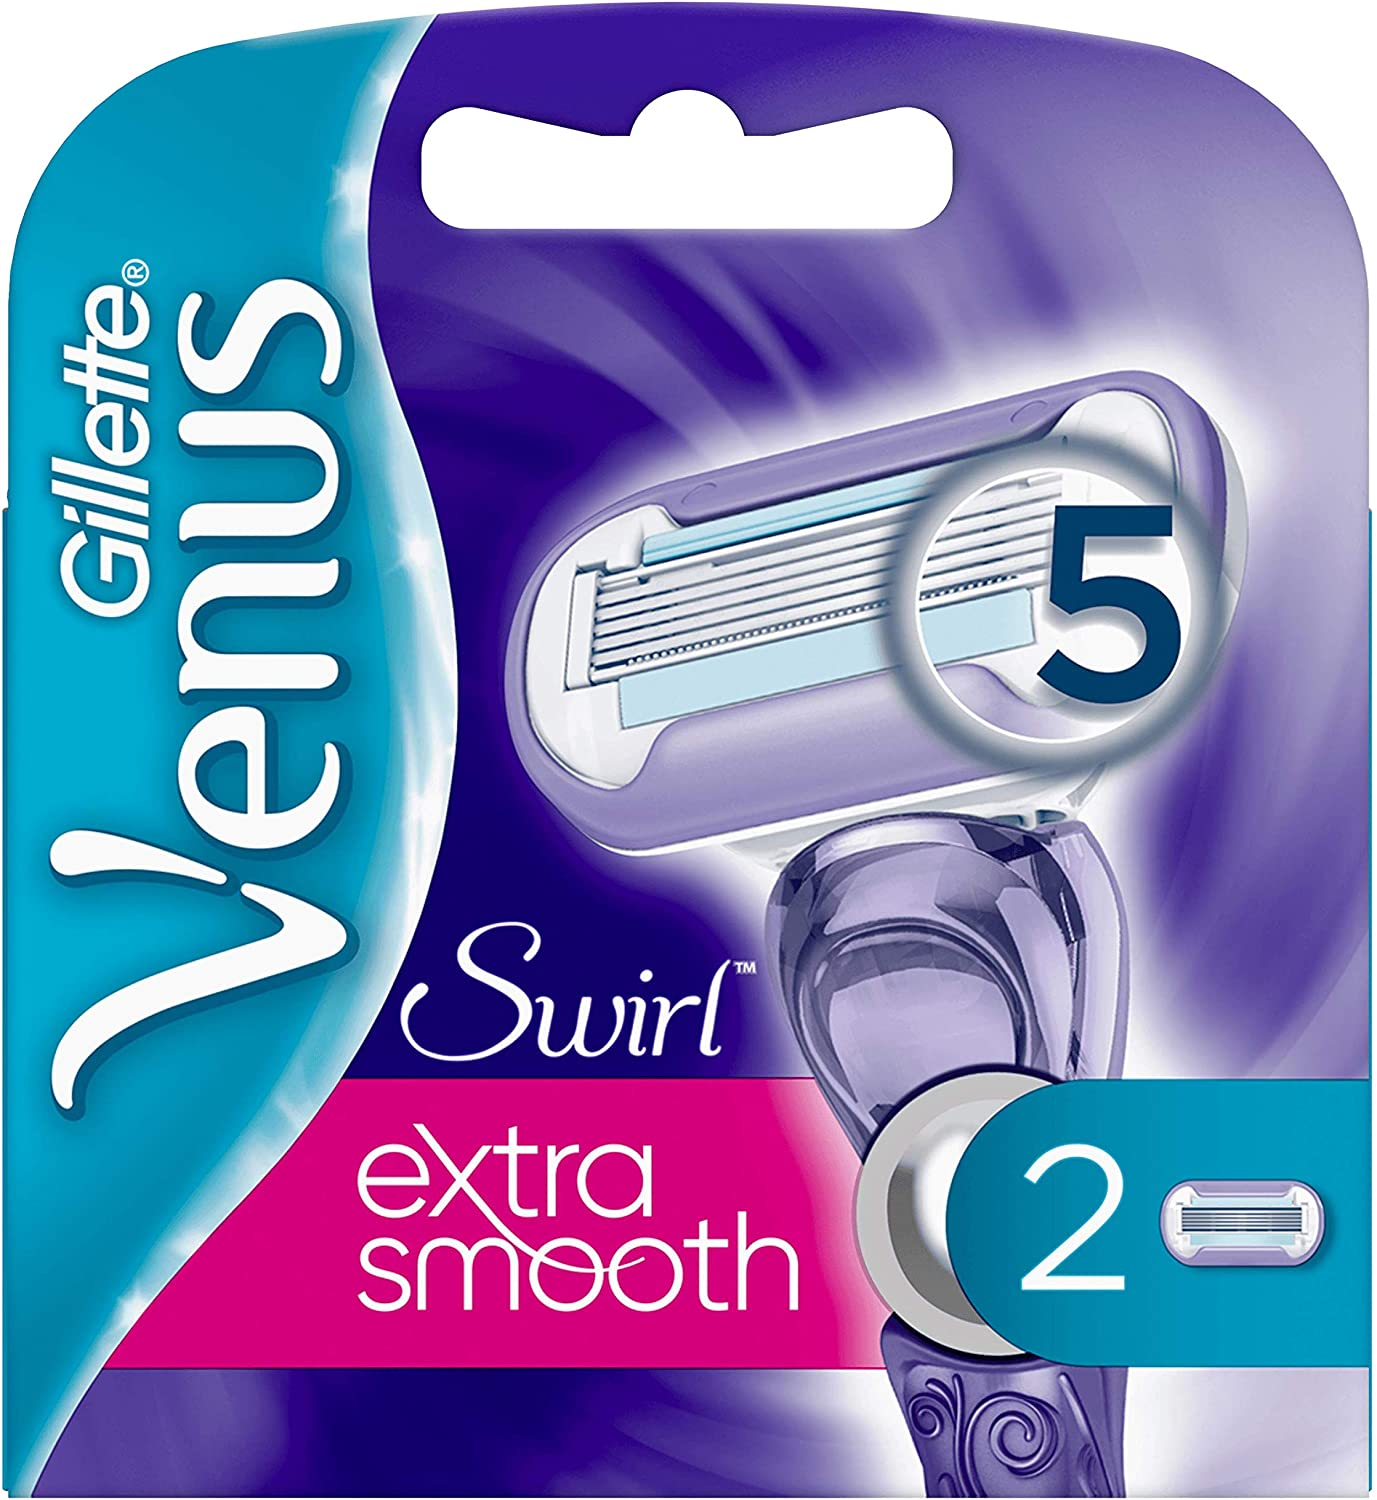 Gillette Venus Swirl Extra Smooth Women's Shaver 2 Refills with 5 DLC-Coated Blades